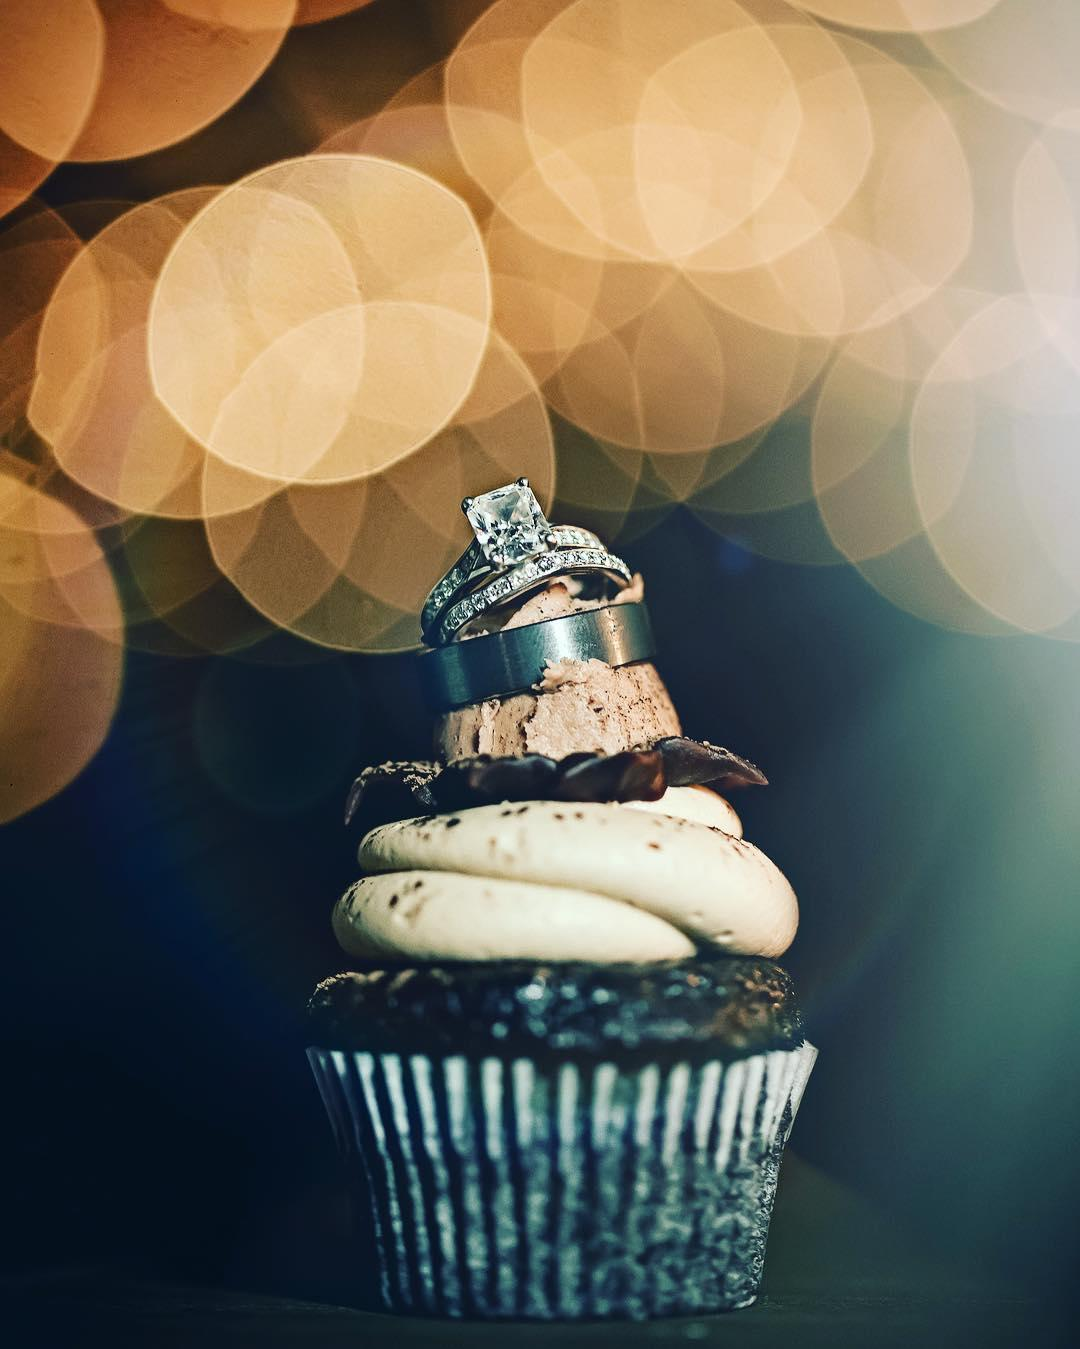 Two wedding rings placed on top of a chocolate cupcake with cream frosting with a bokeh effect background